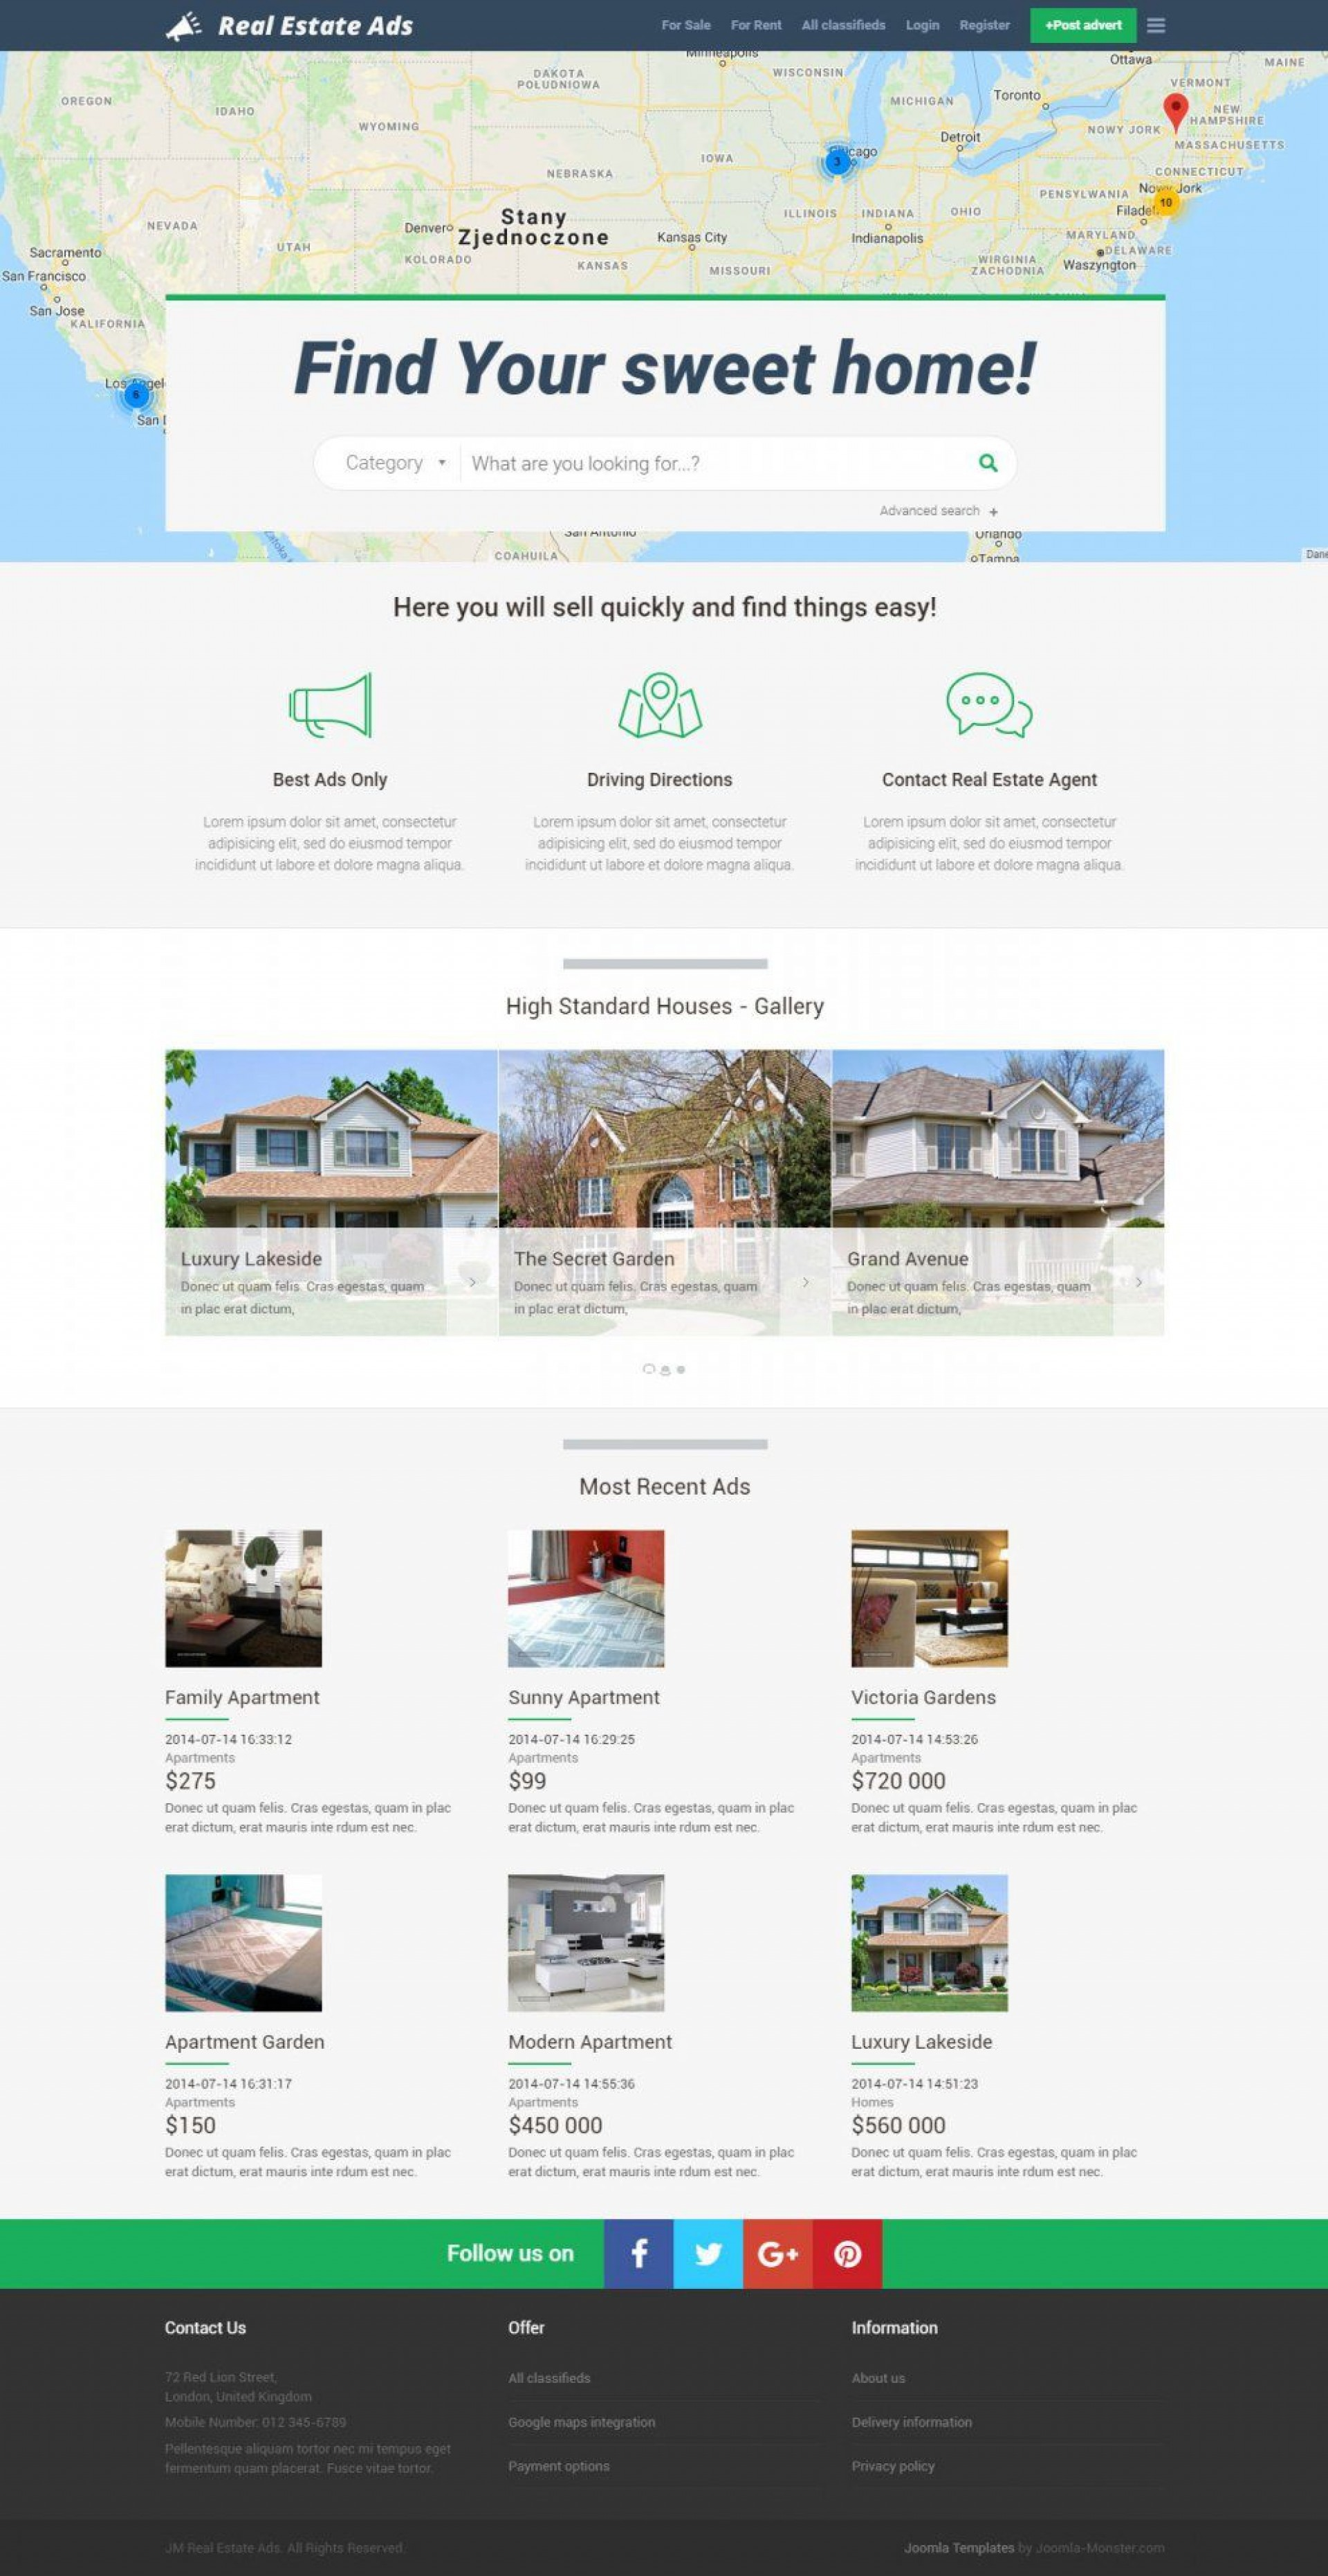 005 Impressive Real Estate Ad Template High Resolution  Templates Commercial Free Listing Flyer Instagram1920